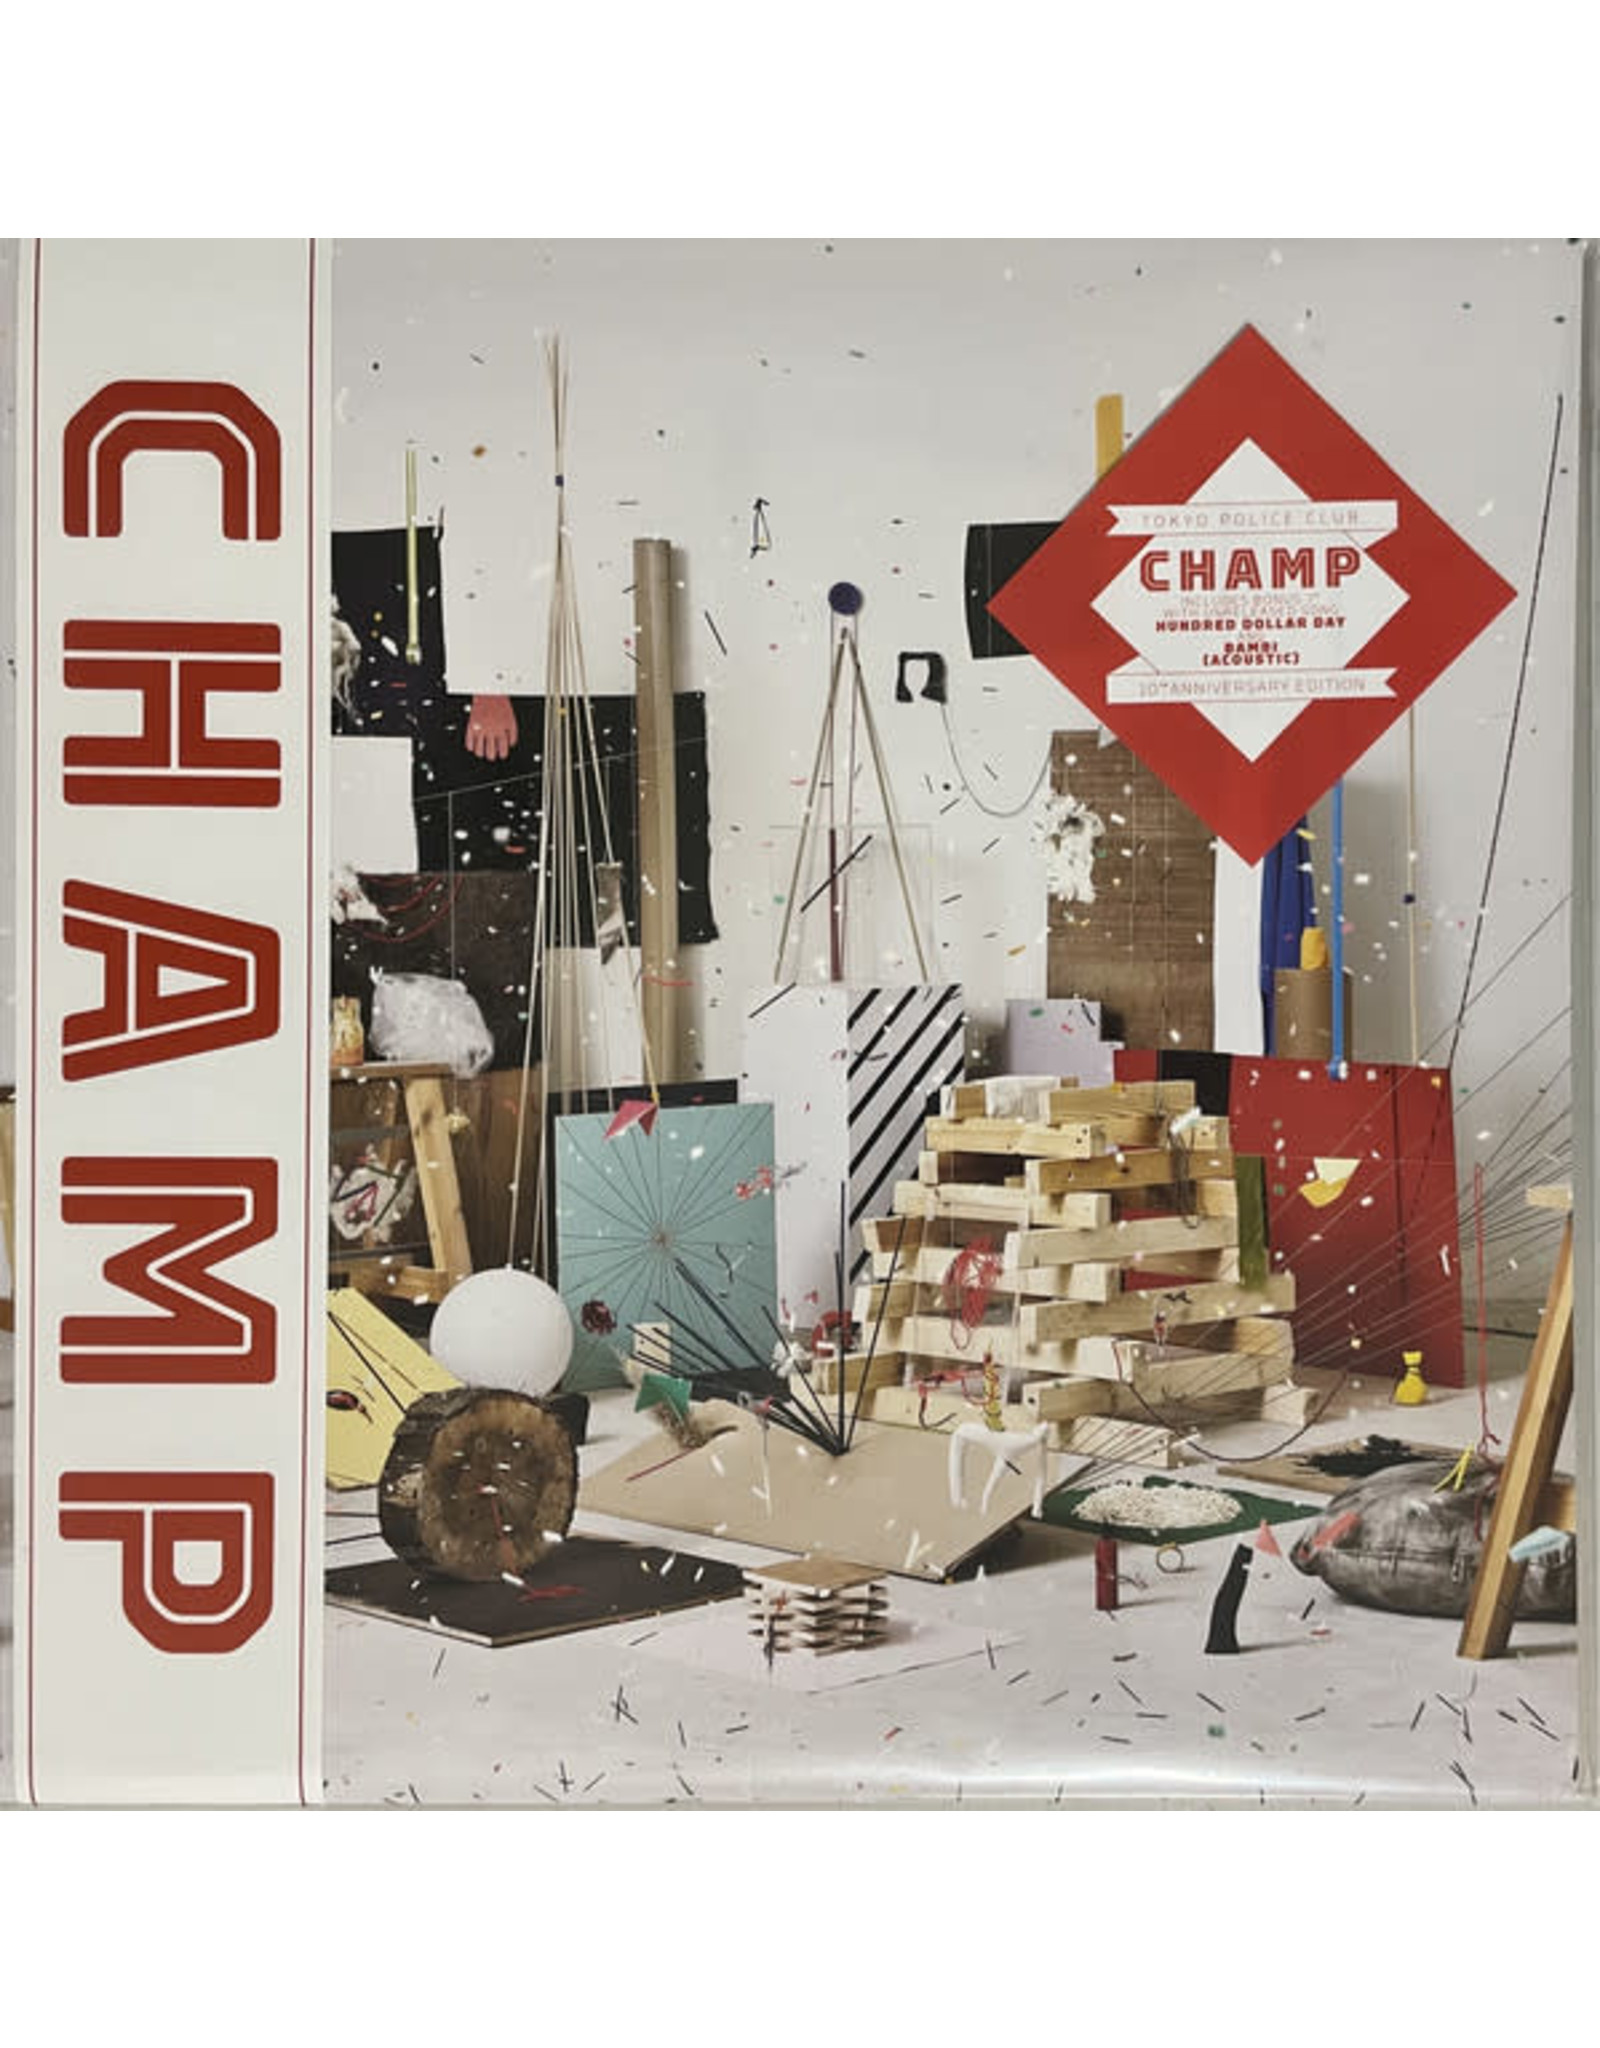 Tokyo Police Club - Champ LP (10th Anniversary Edition Green Vinyl)